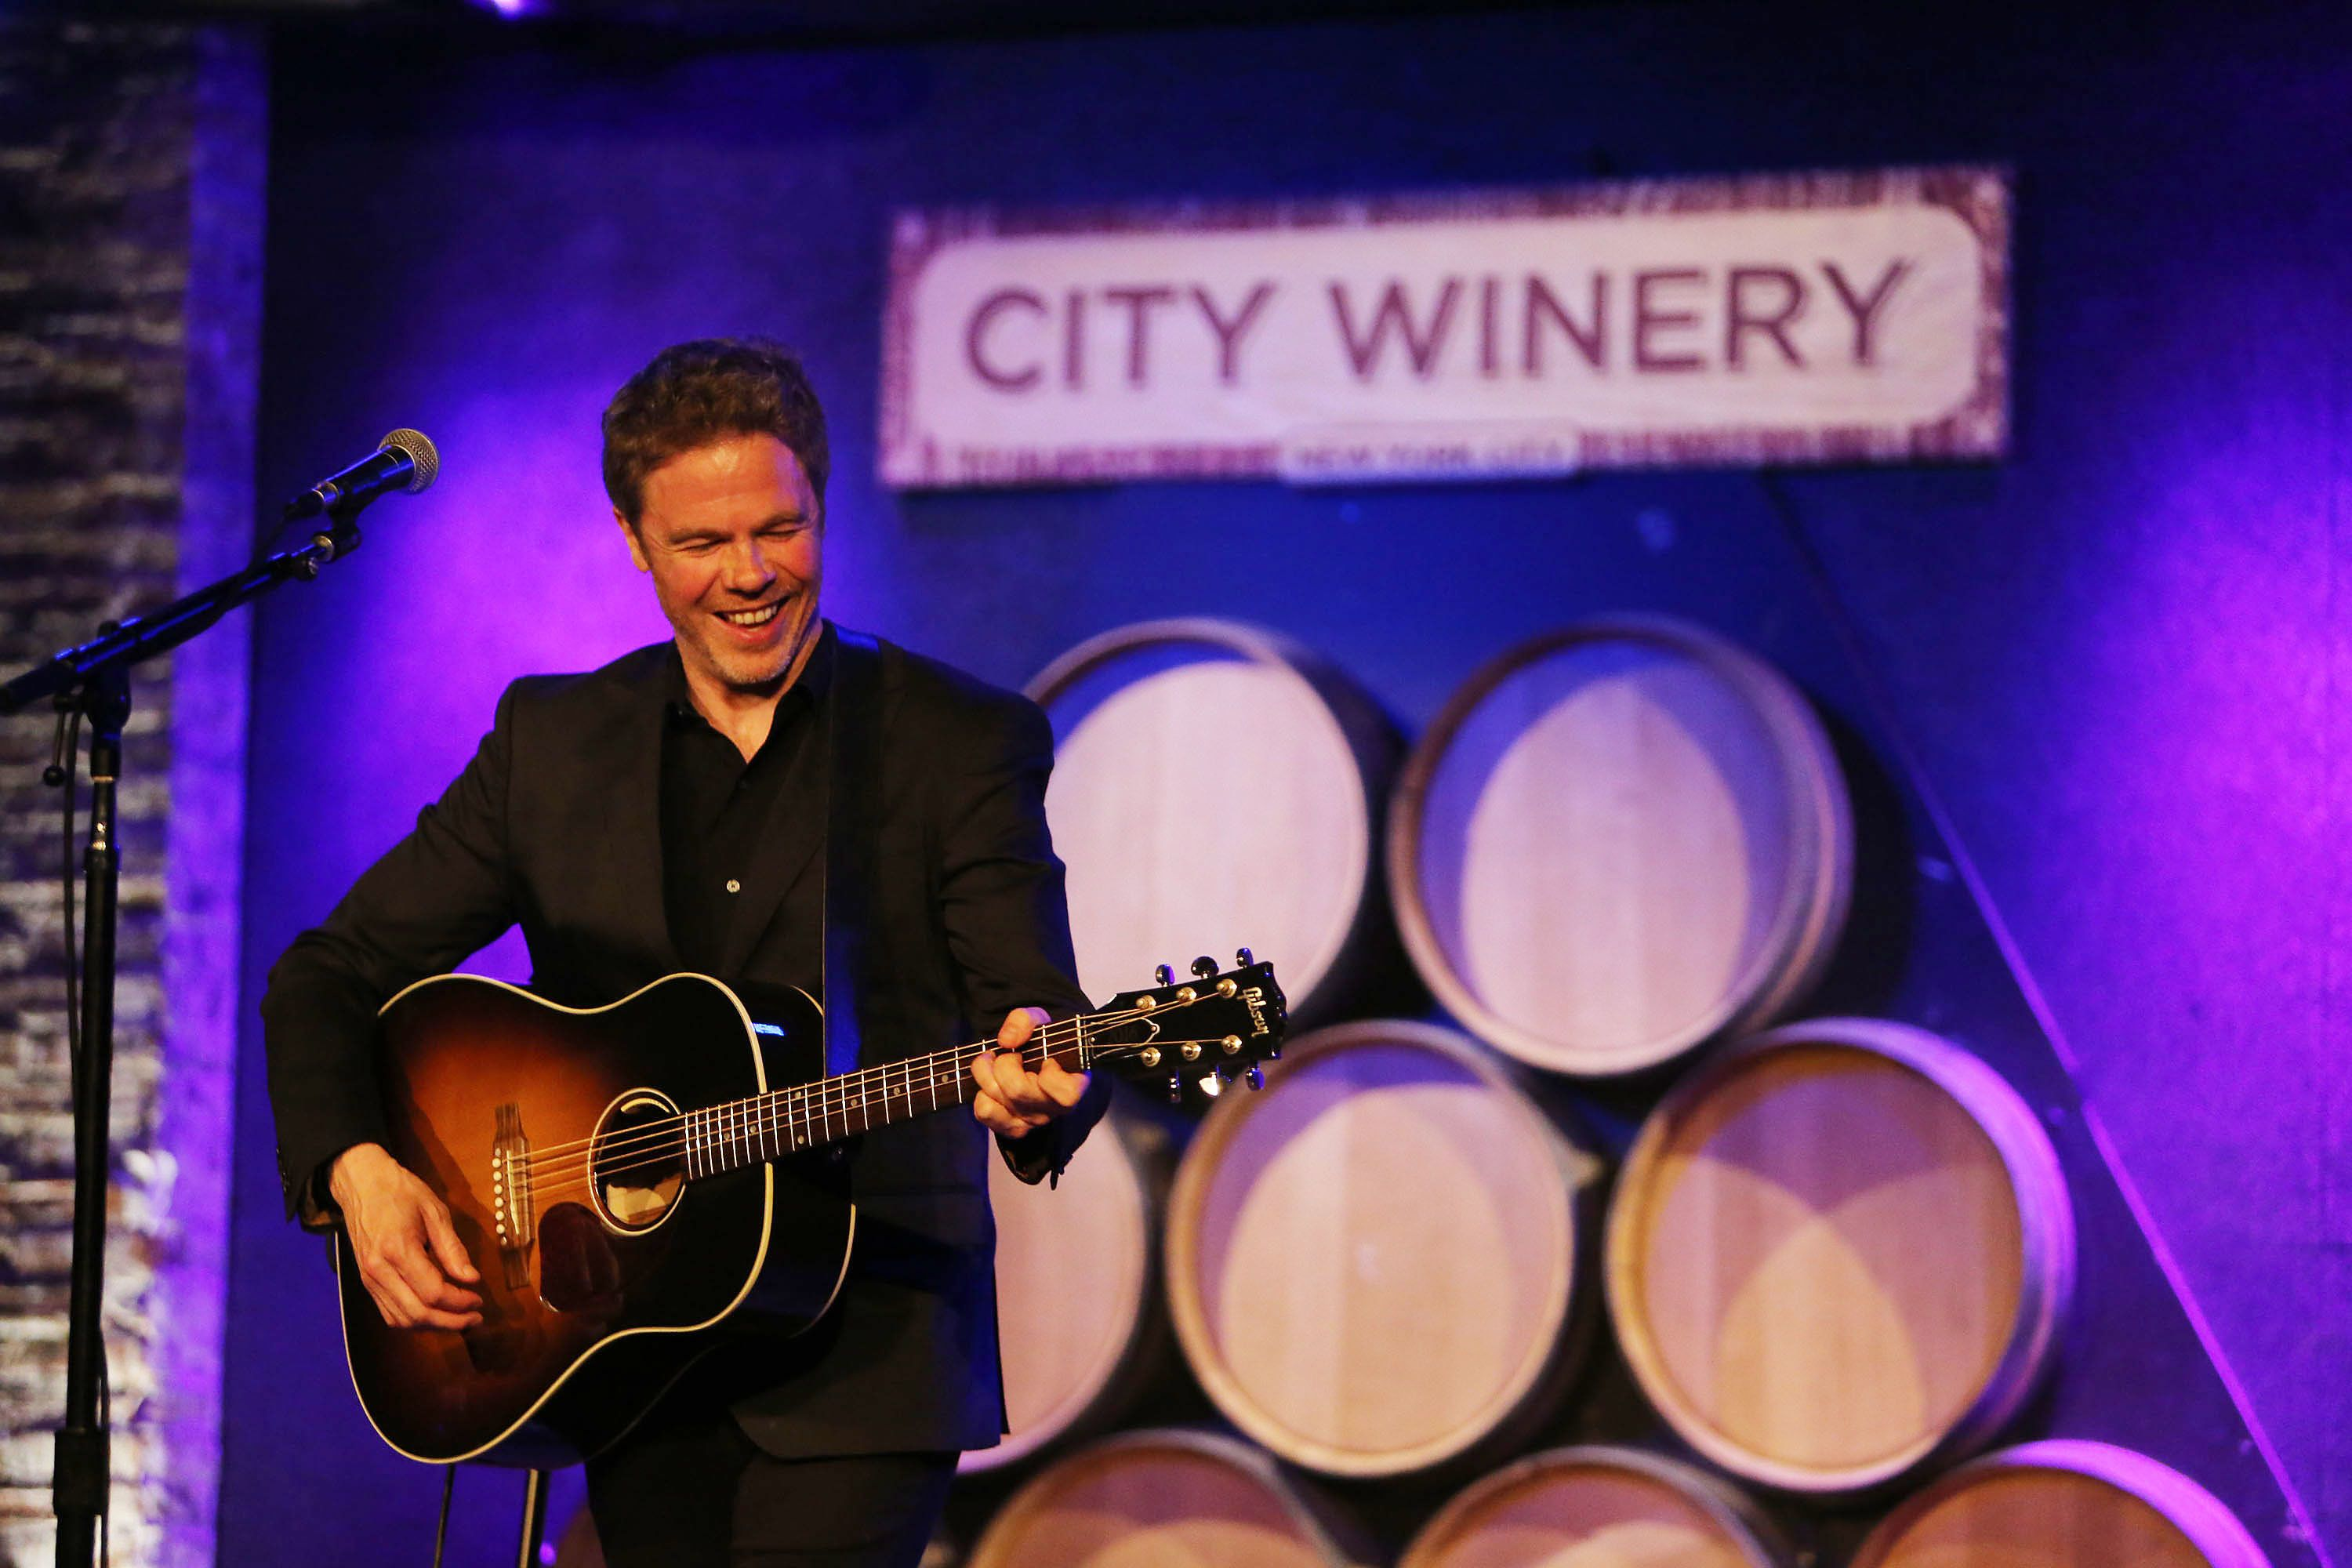 NEW YORK, NY - APRIL 18: Josh Ritter performs at City Winery on April 18, 2017 in New York City. (Photo by Al Pereira/Getty Images).